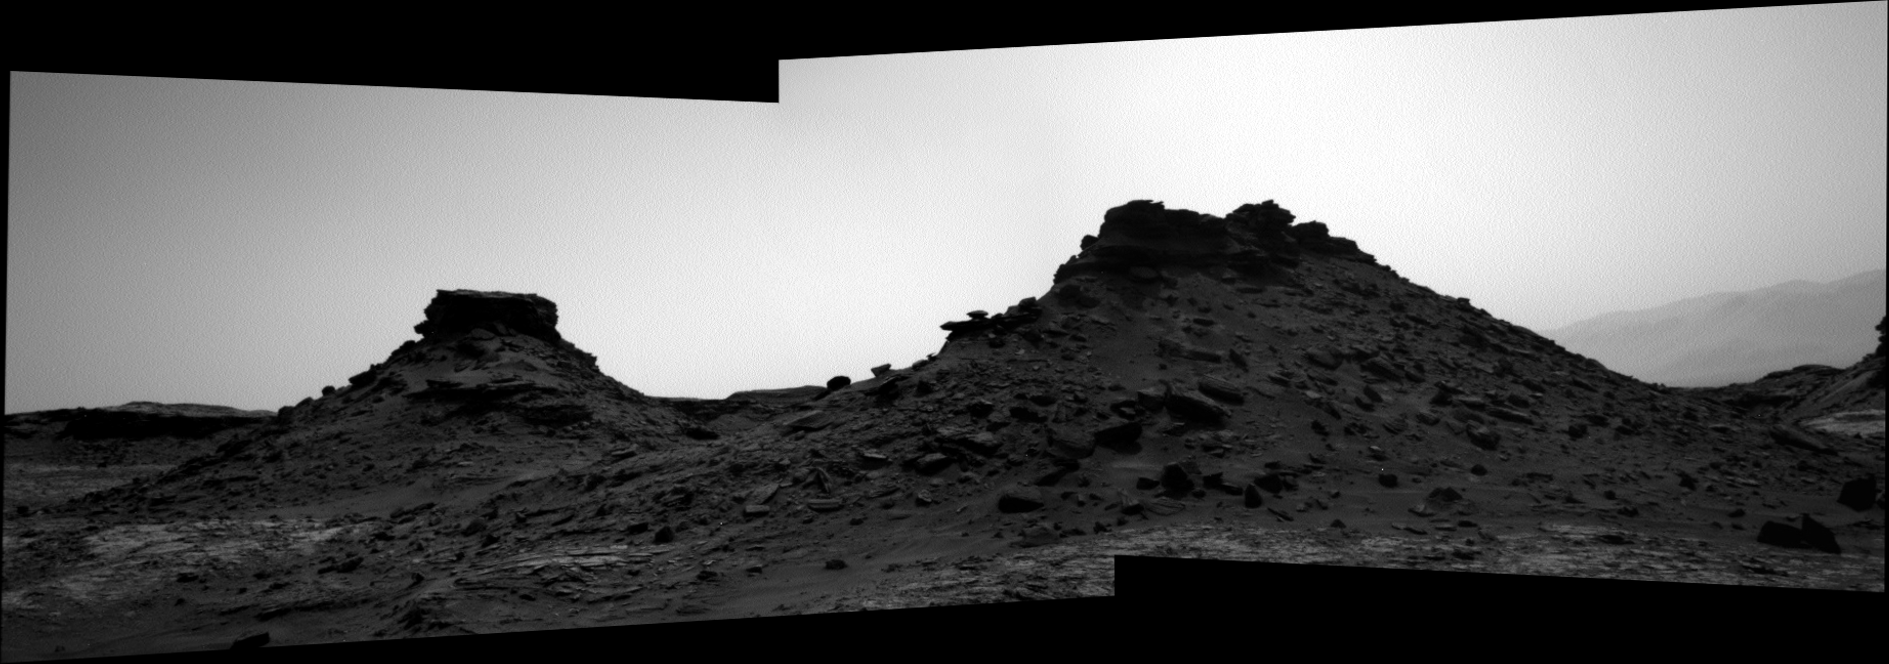 panoramic curiosity rover b&w view 1 - sol 1431 - was life on mars